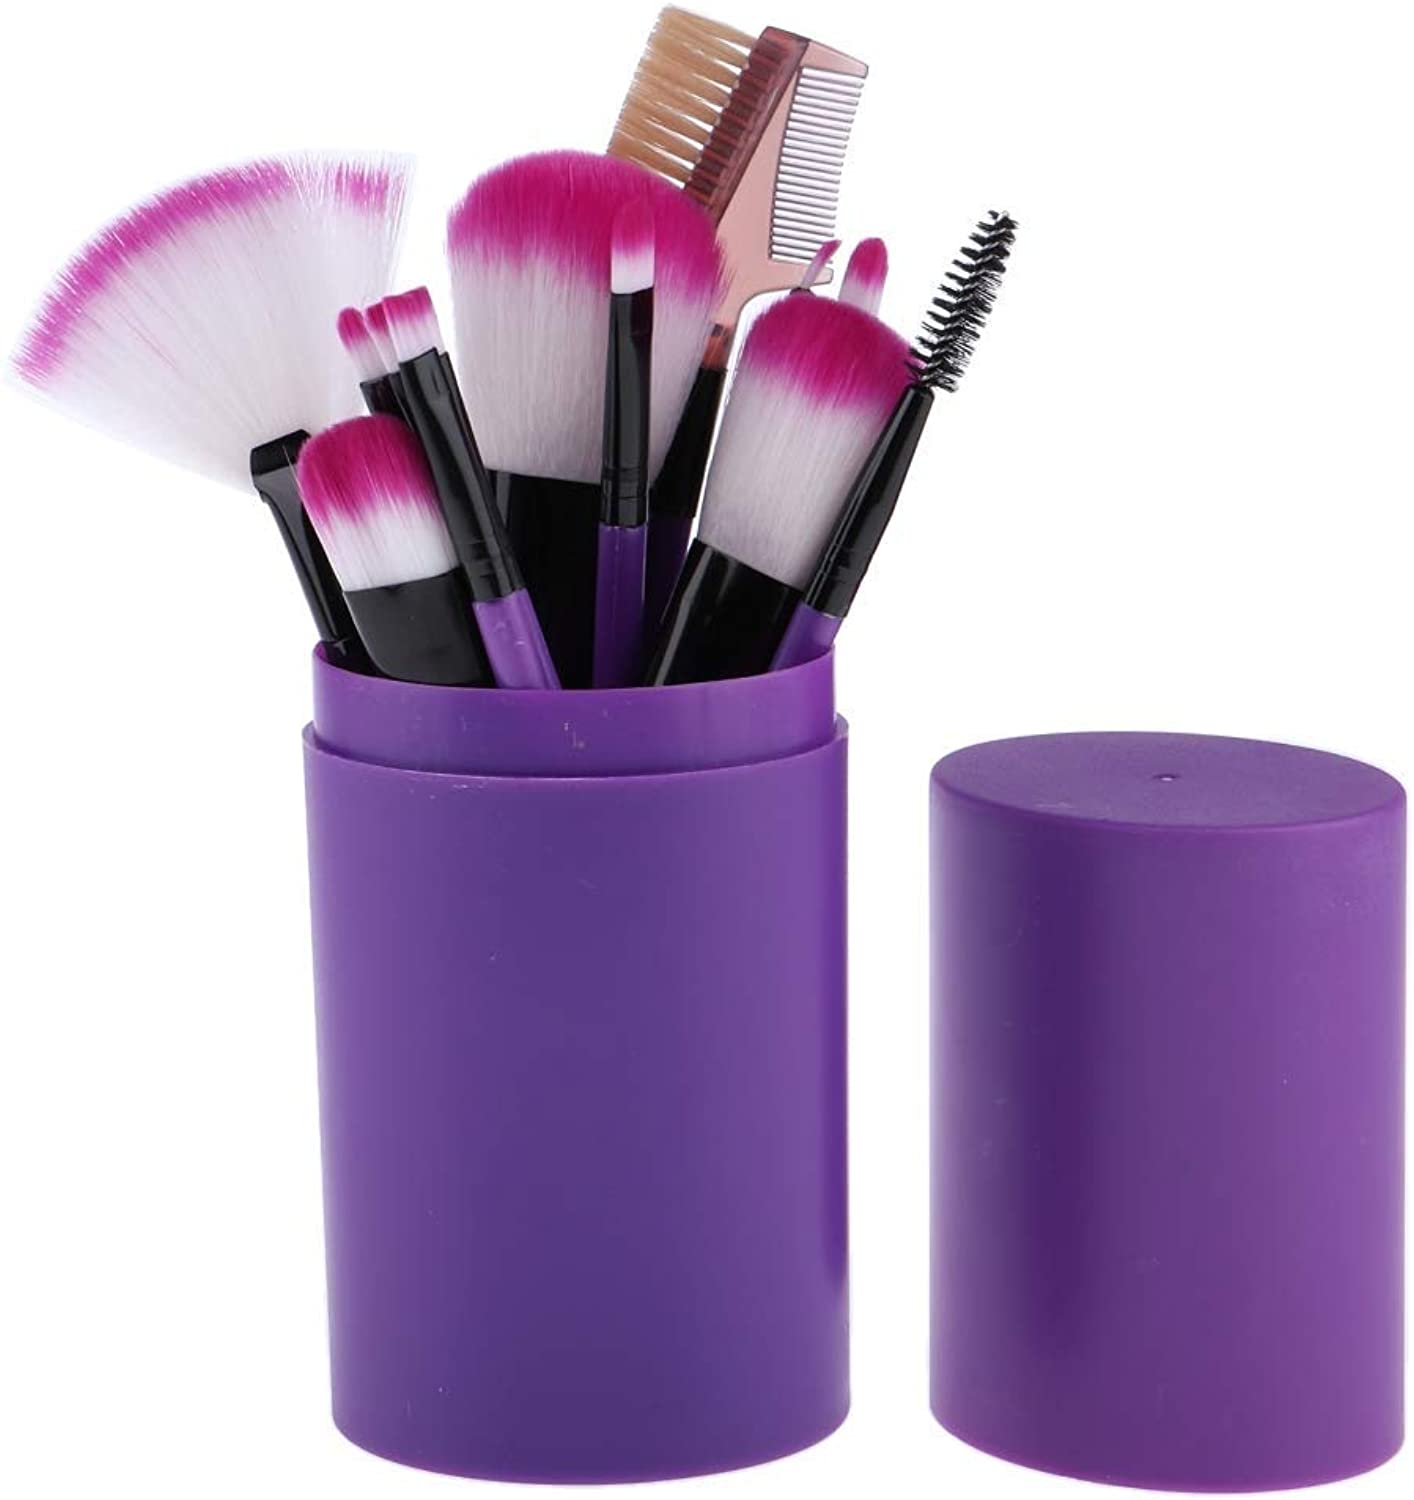 Fashion 12pcs Set Makeup Brushes with HolderPurple for Concealer, Foundation, Blending, bluesh, Eye Shadow, Eyebrows, Eyeliner and Lips, Etc Purple Pretty (color   Purple, Size   19  9  9)